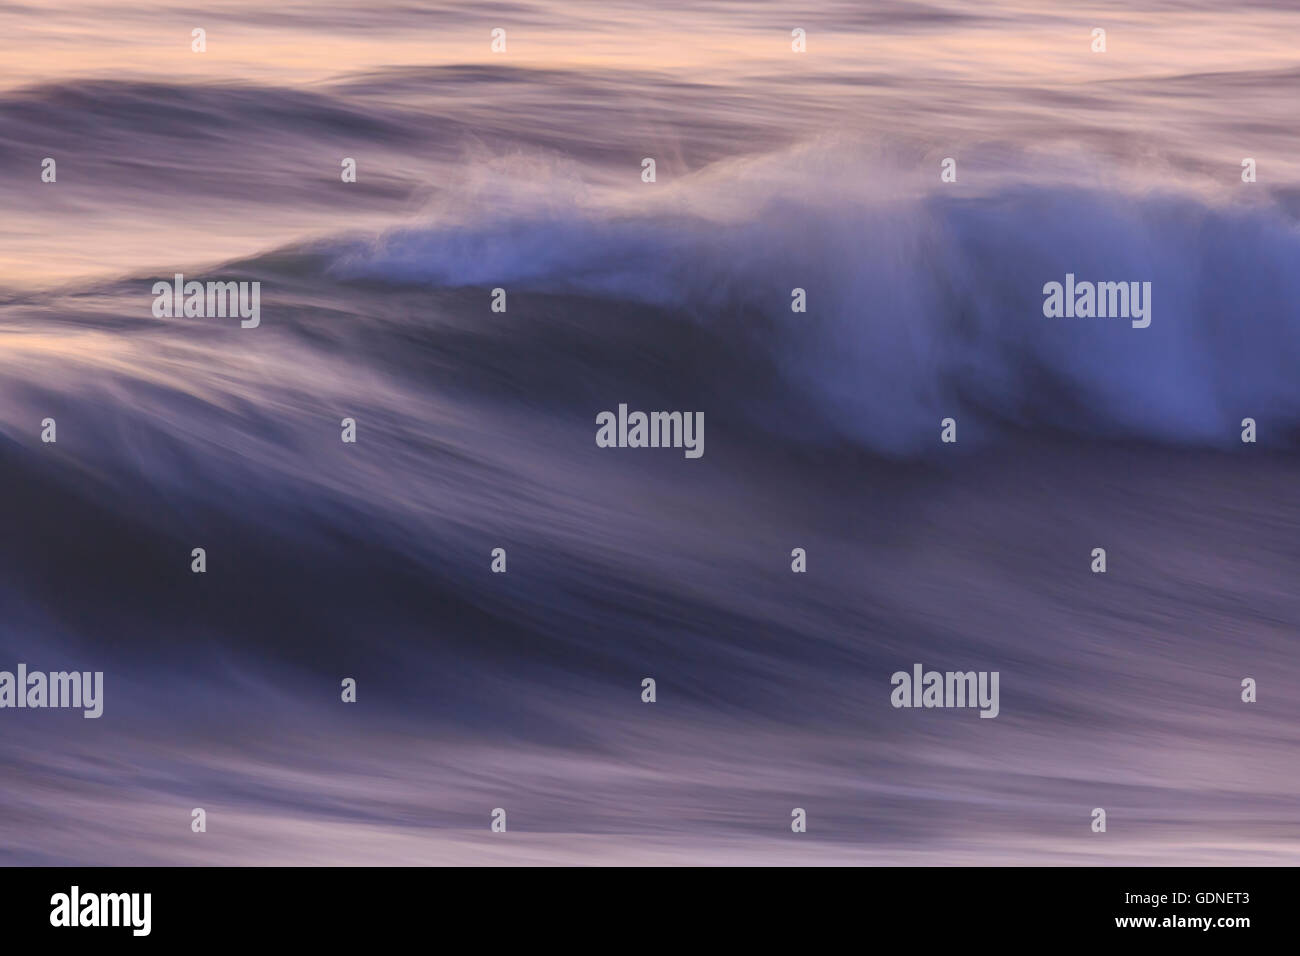 Pacific Ocean wave patterns after sunset, Pacific Beach, San Diego, CA, USA - Stock Image